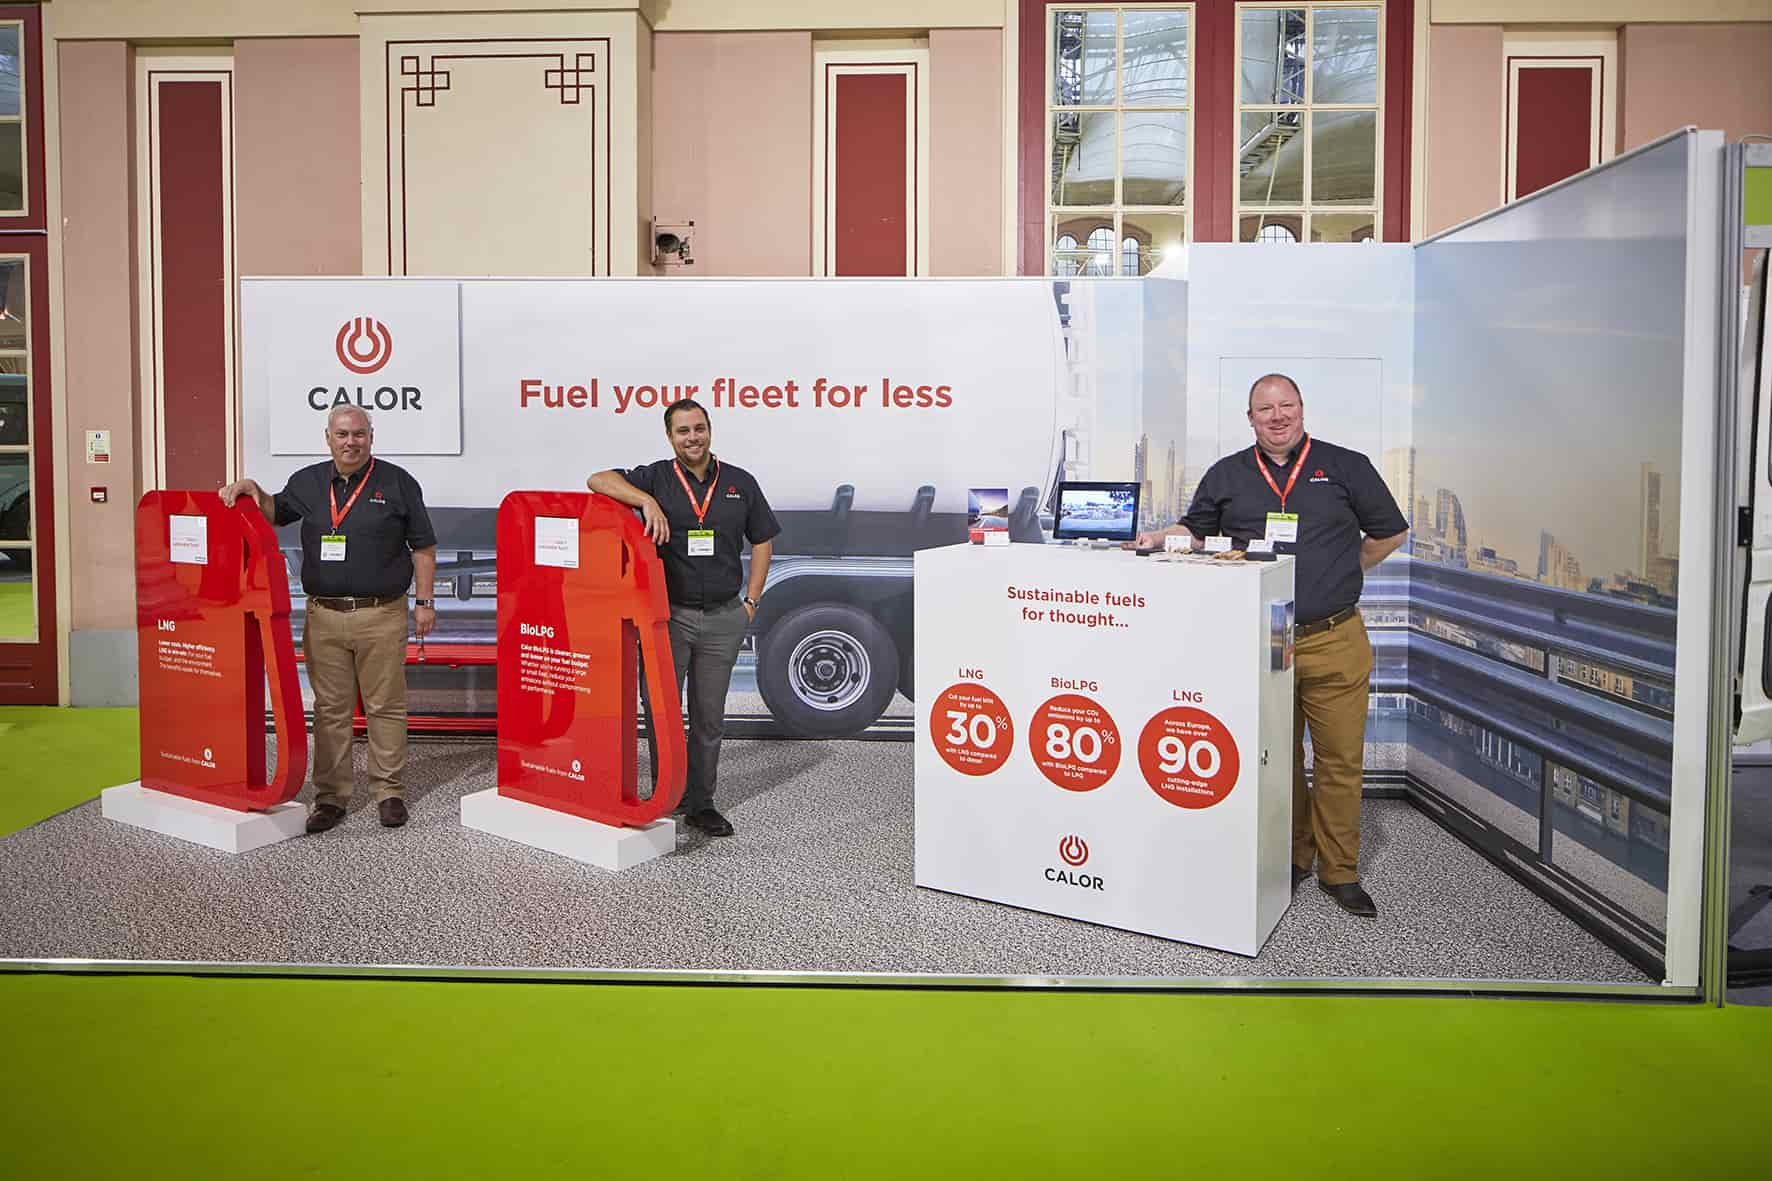 A team of Calor employees at a transport show